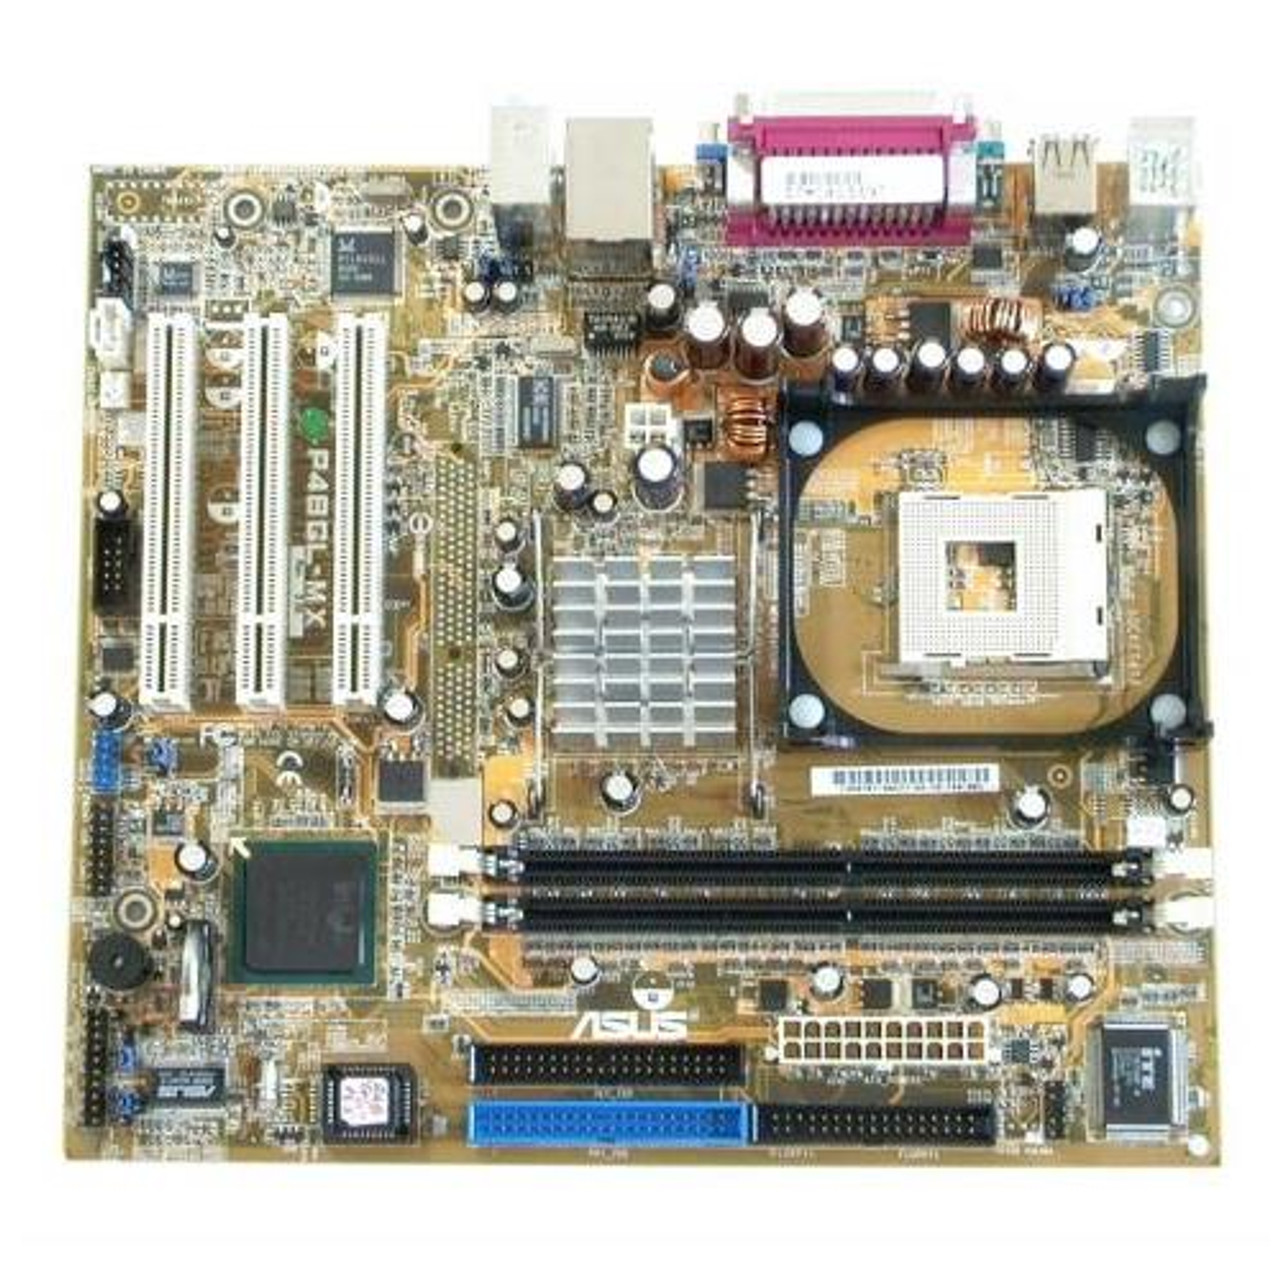 Wondrous P4Bgl Mx Asus Socket 478 Intel 845Gl Chipset Pentium 4 Processors Support Micro Atx Motherboard Refurbished Interior Design Ideas Oxytryabchikinfo